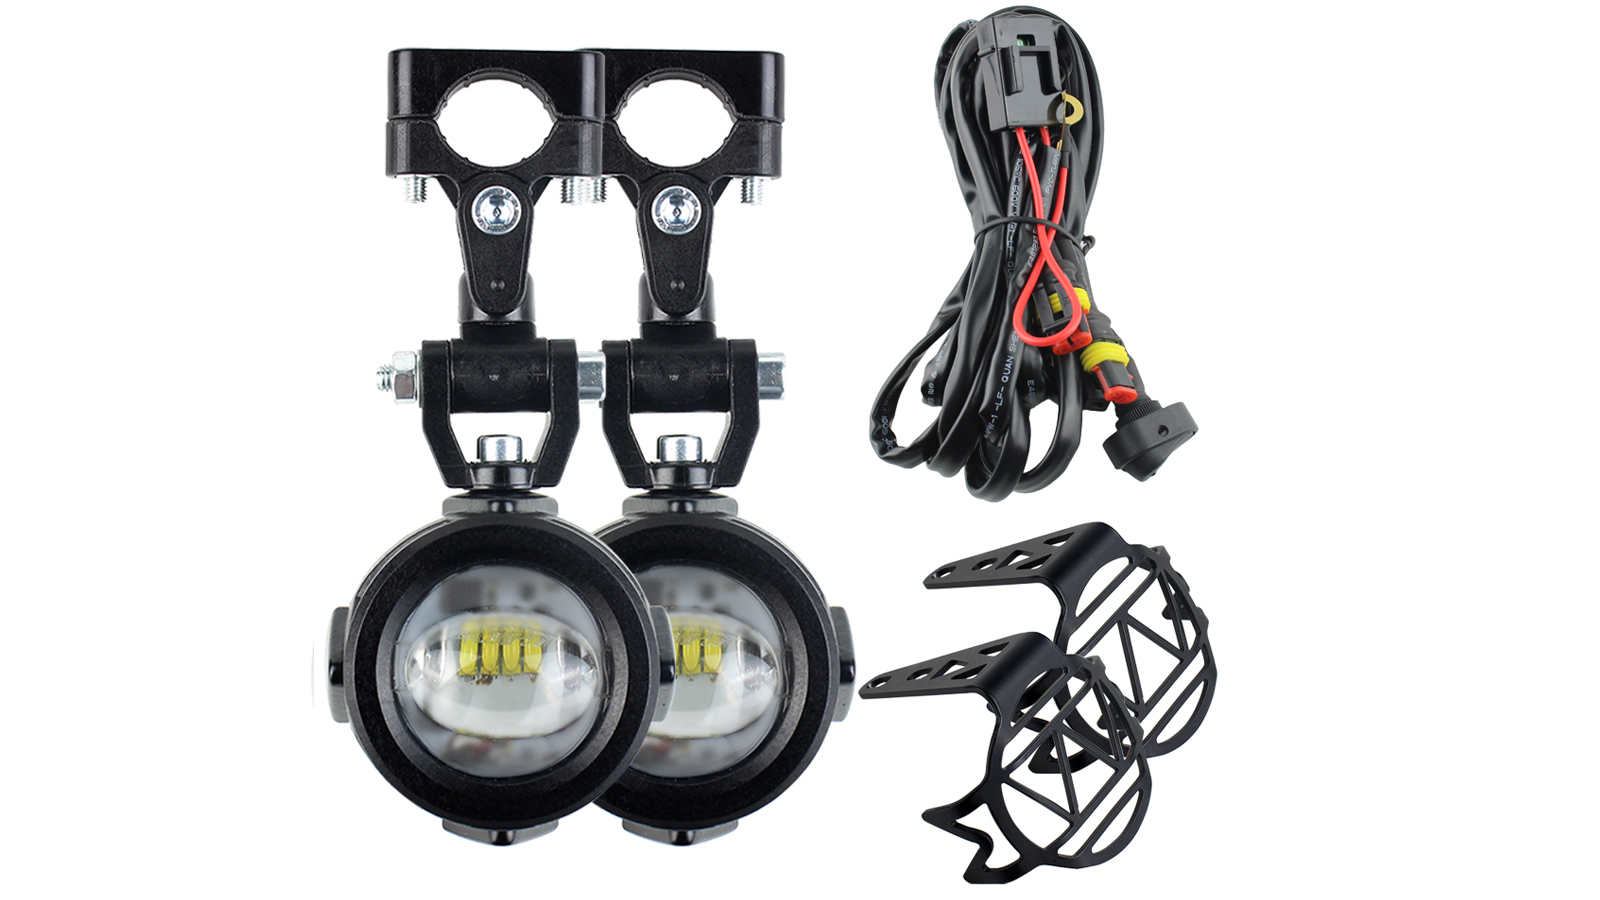 LED Auxiliary Driving Fog Light for BMW K1600 R1200GS R1100GS F800GS Fog Lamps